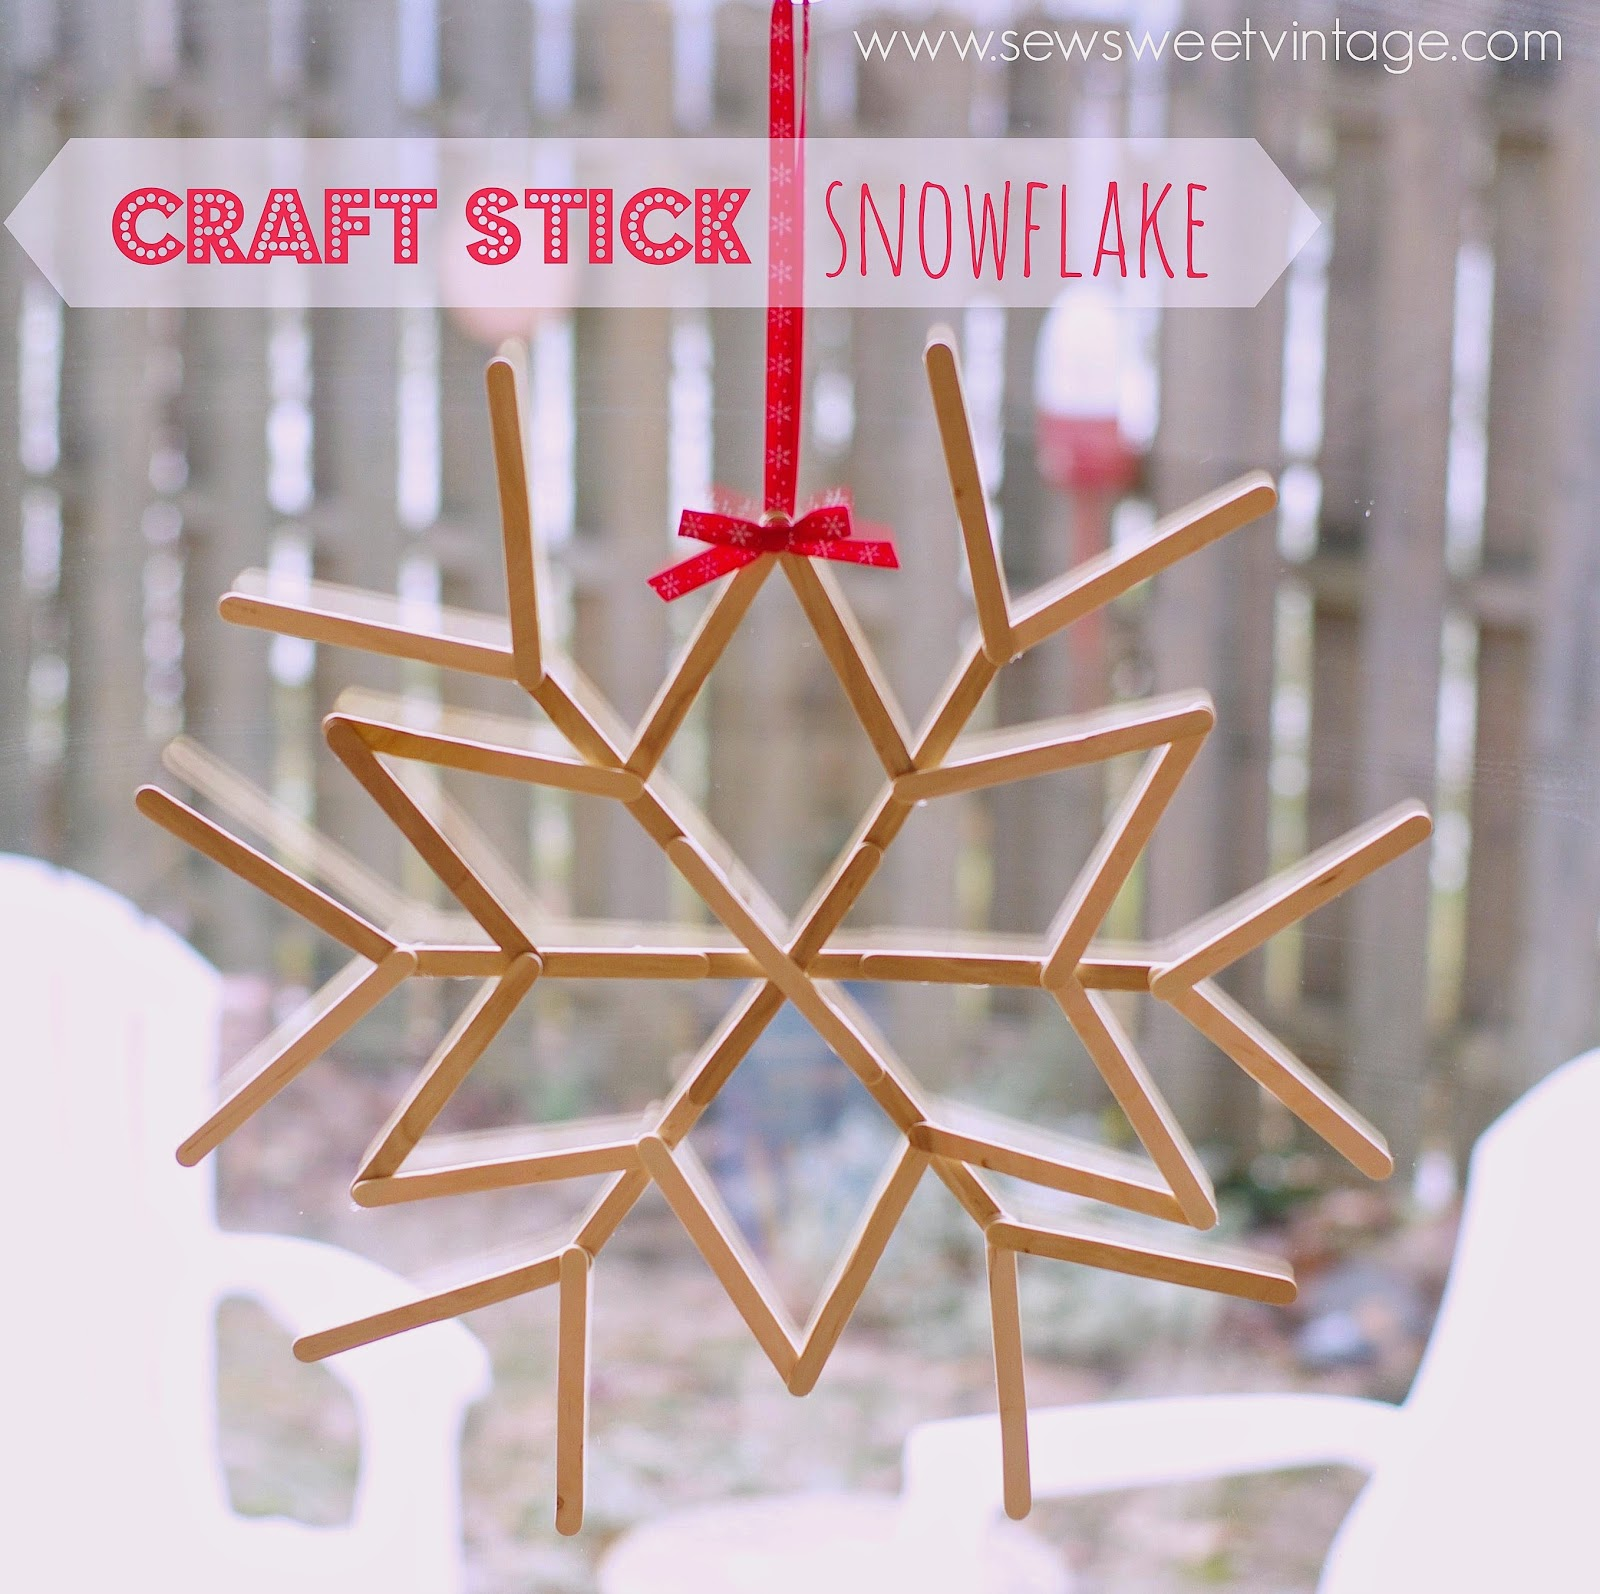 Craft Stick Snowflake Tutorial by Sew Sweet Vintage